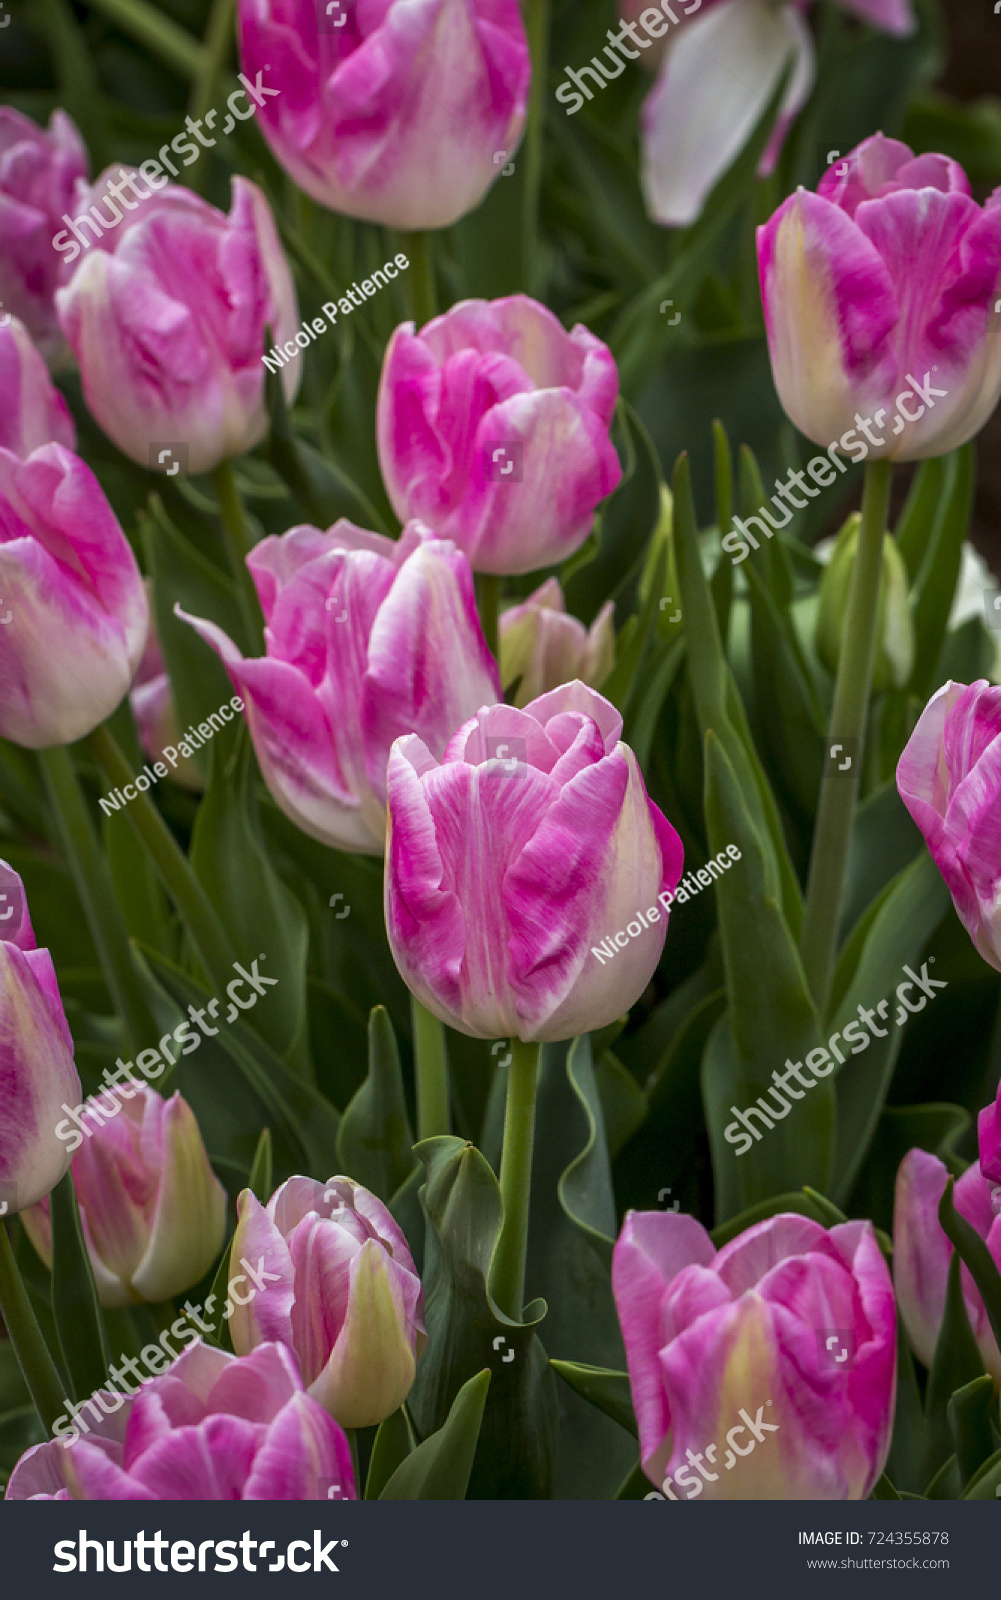 Bright Pink White Tulip Flowers Rural Stock Photo Safe To Use